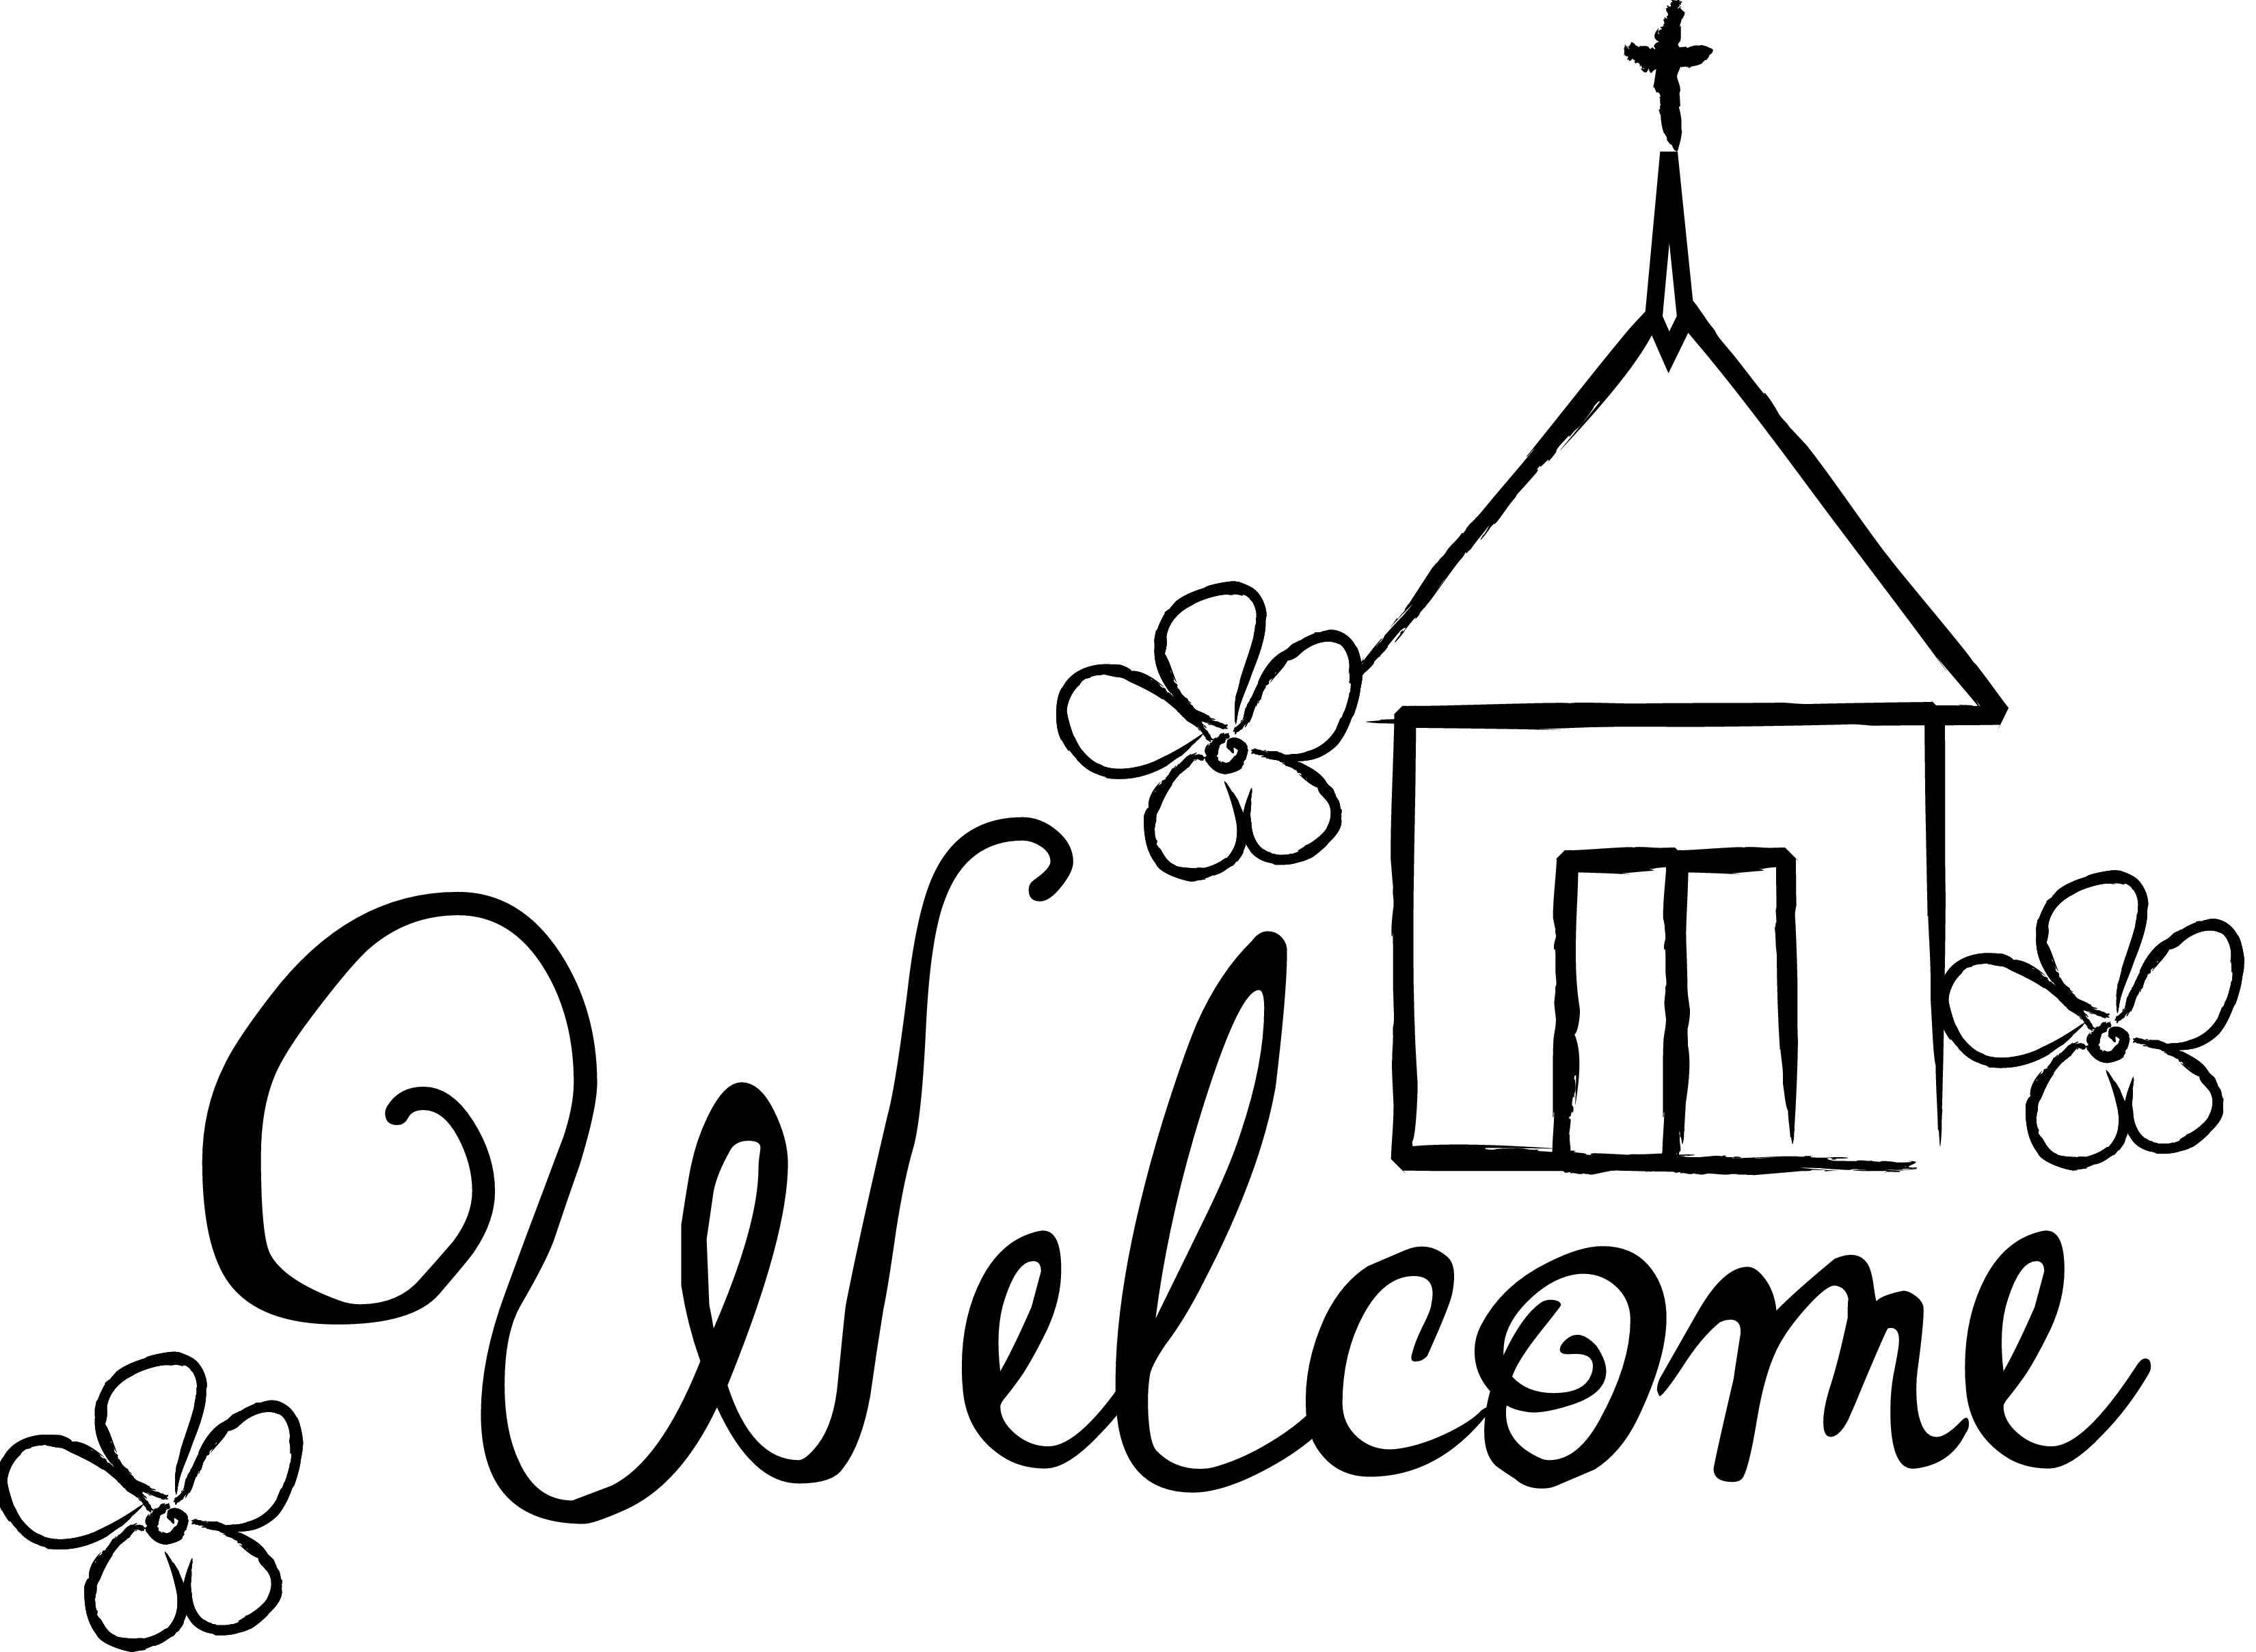 God bless our school clipart black and white image freeuse Church bulletin clip art black and white - Clip Art Library image freeuse